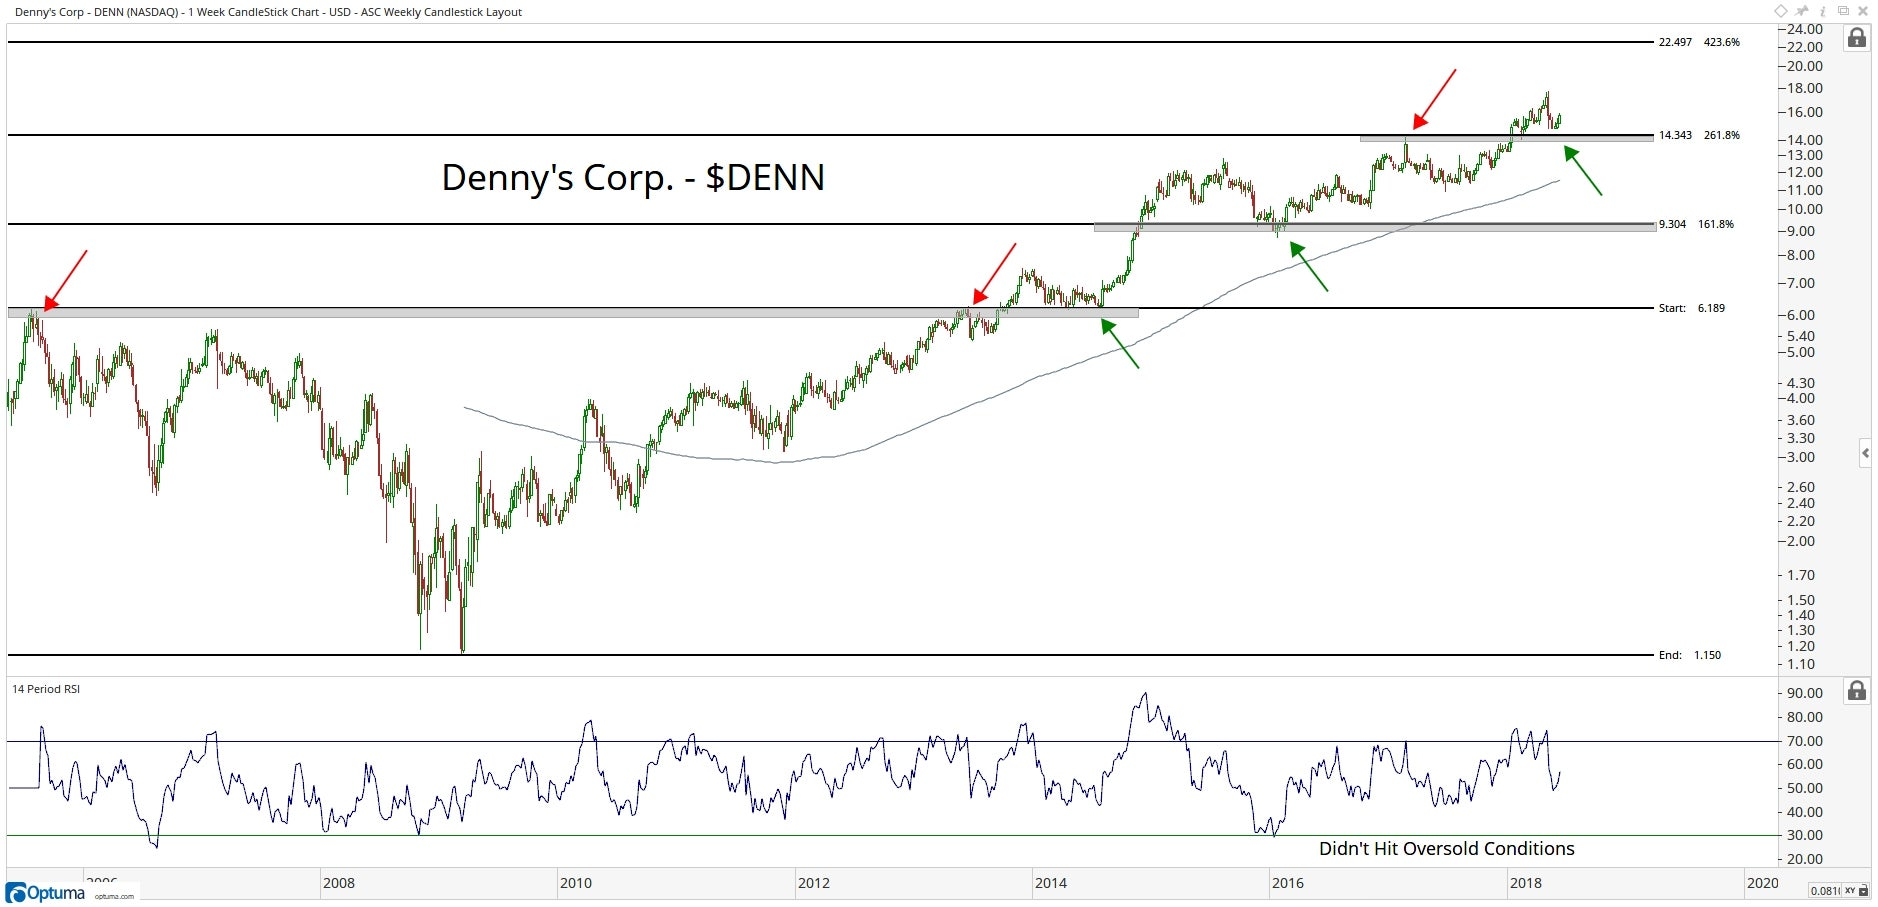 Technical chart showing the performance of Denny's Corporation (DENN) stock